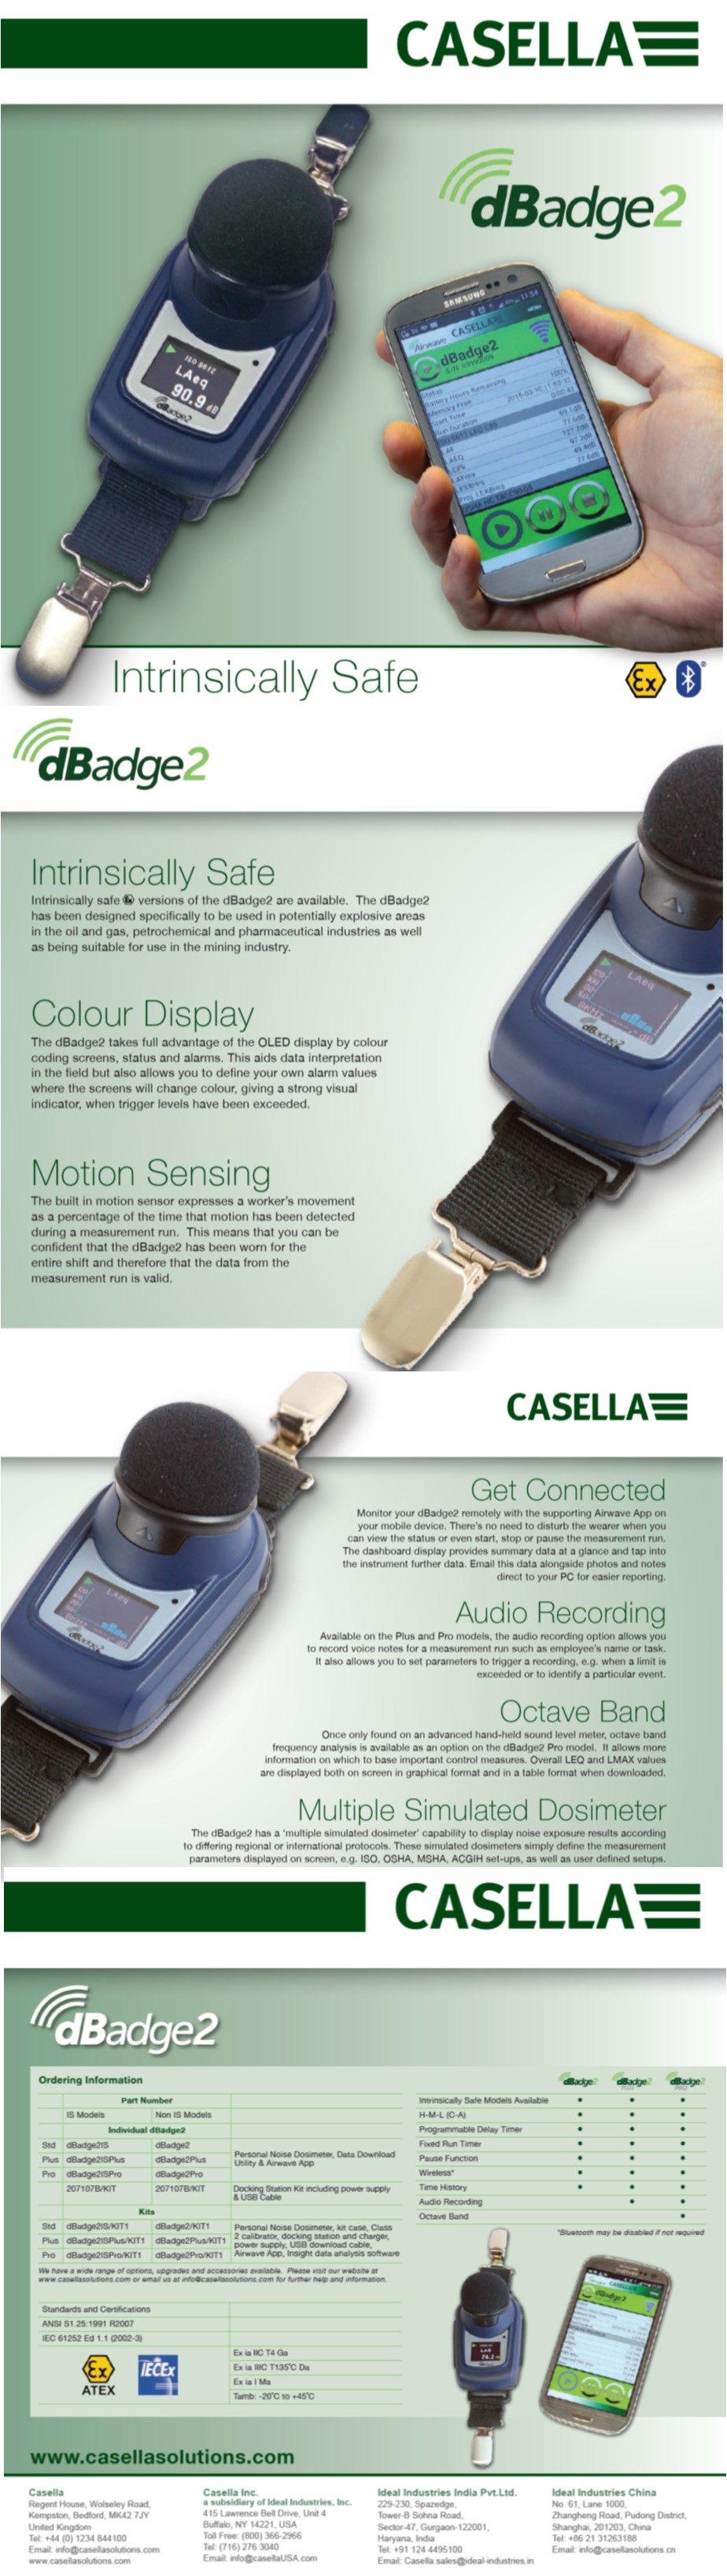 Casella CEL-350 & CEL-350IS dBadge2 Micro Noise Dosimeters for Hearing  Protection